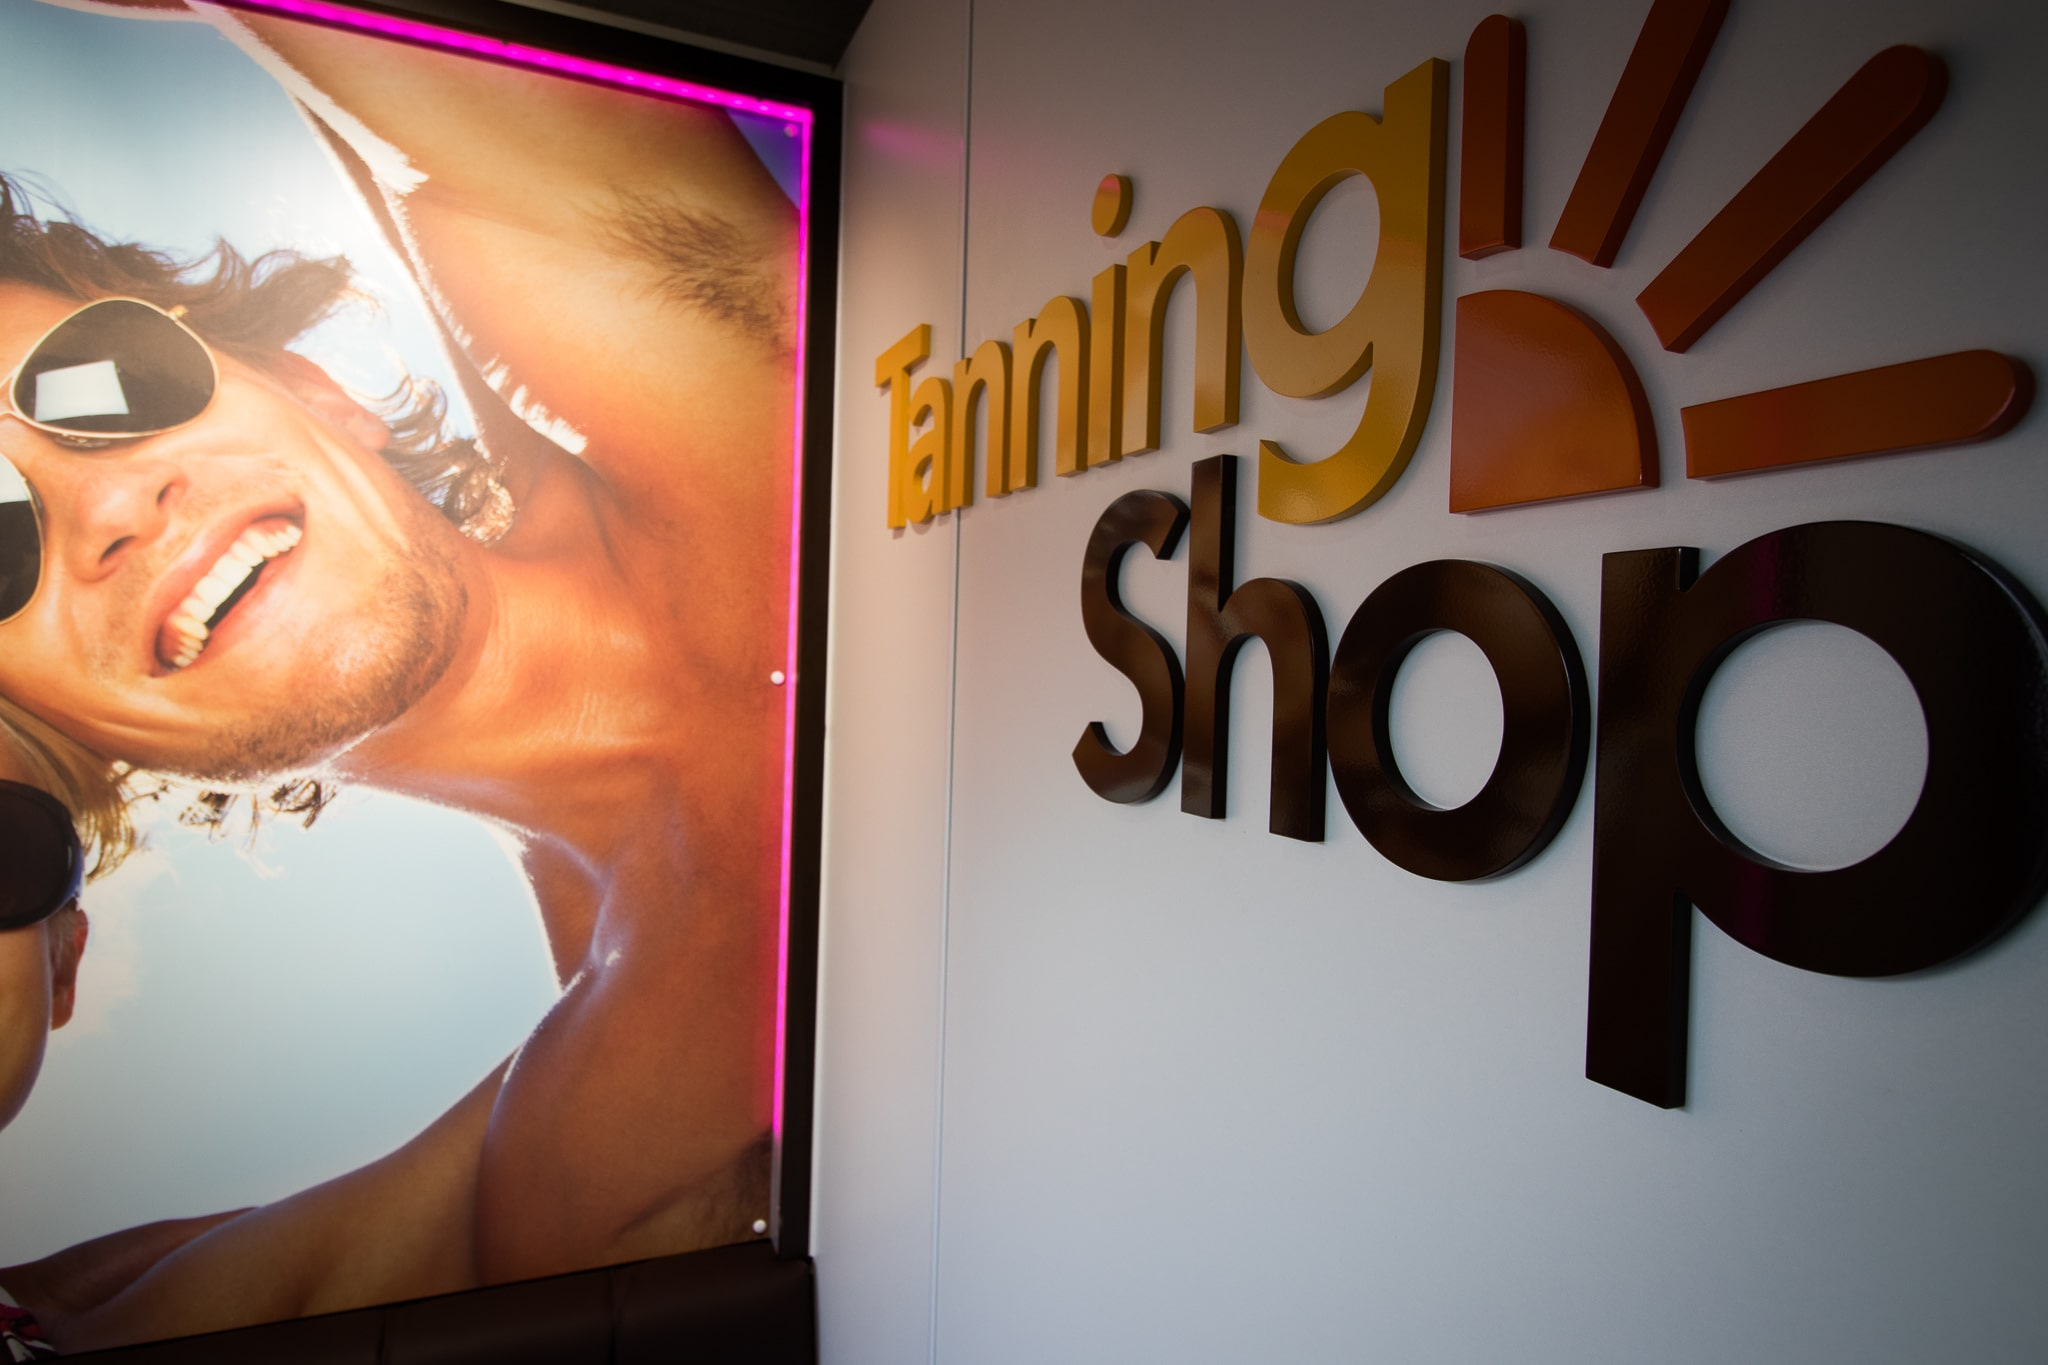 The Tanning Shop Beechdale Nottingham